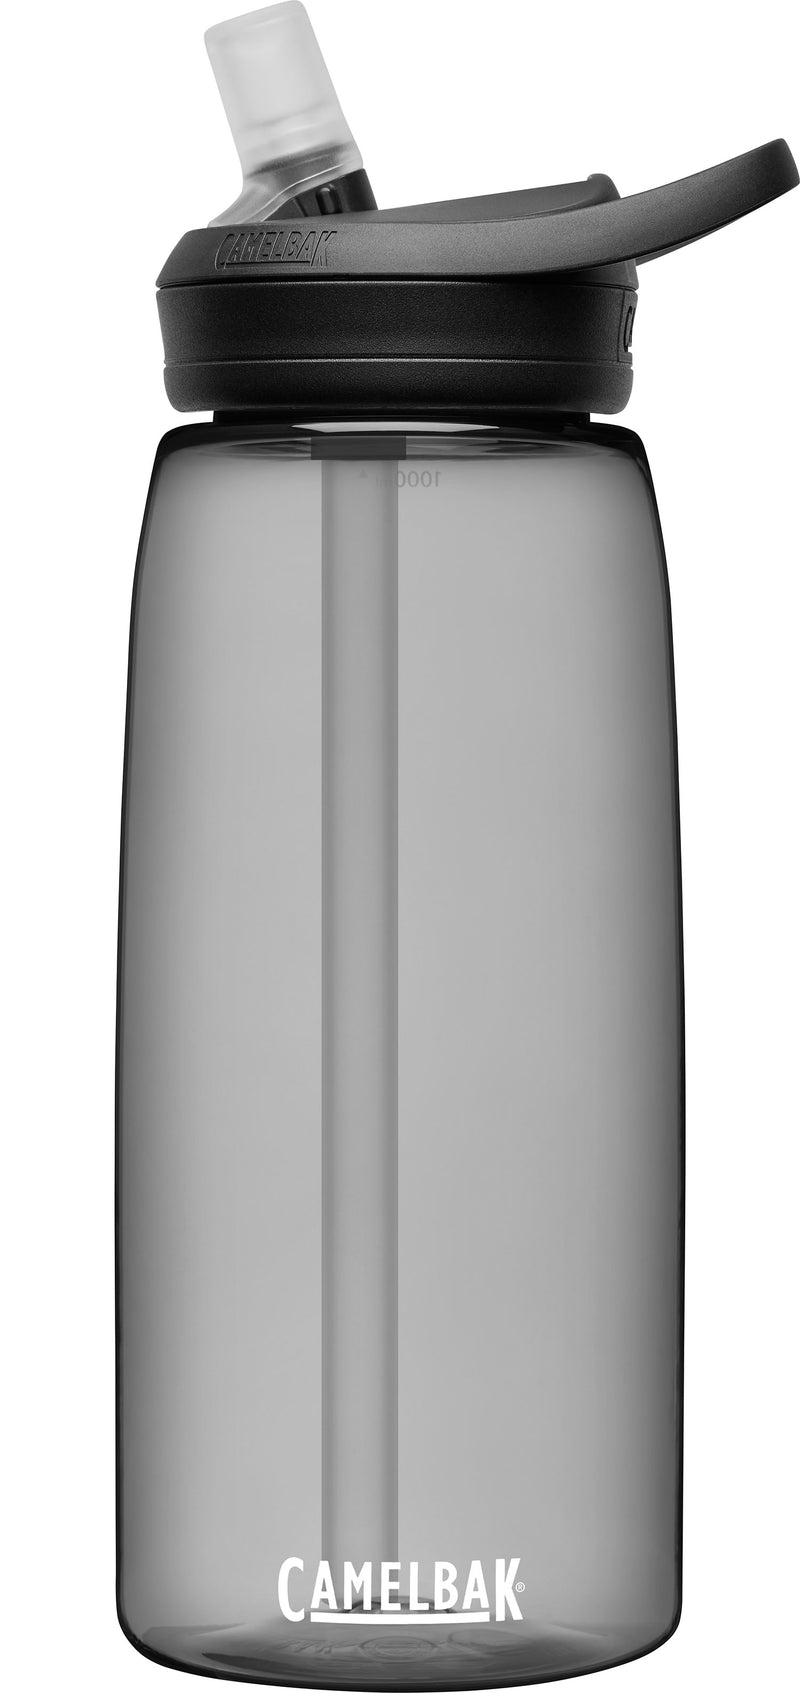 Charcoal 1 litre CamelBak Eddy+ Water Bottle